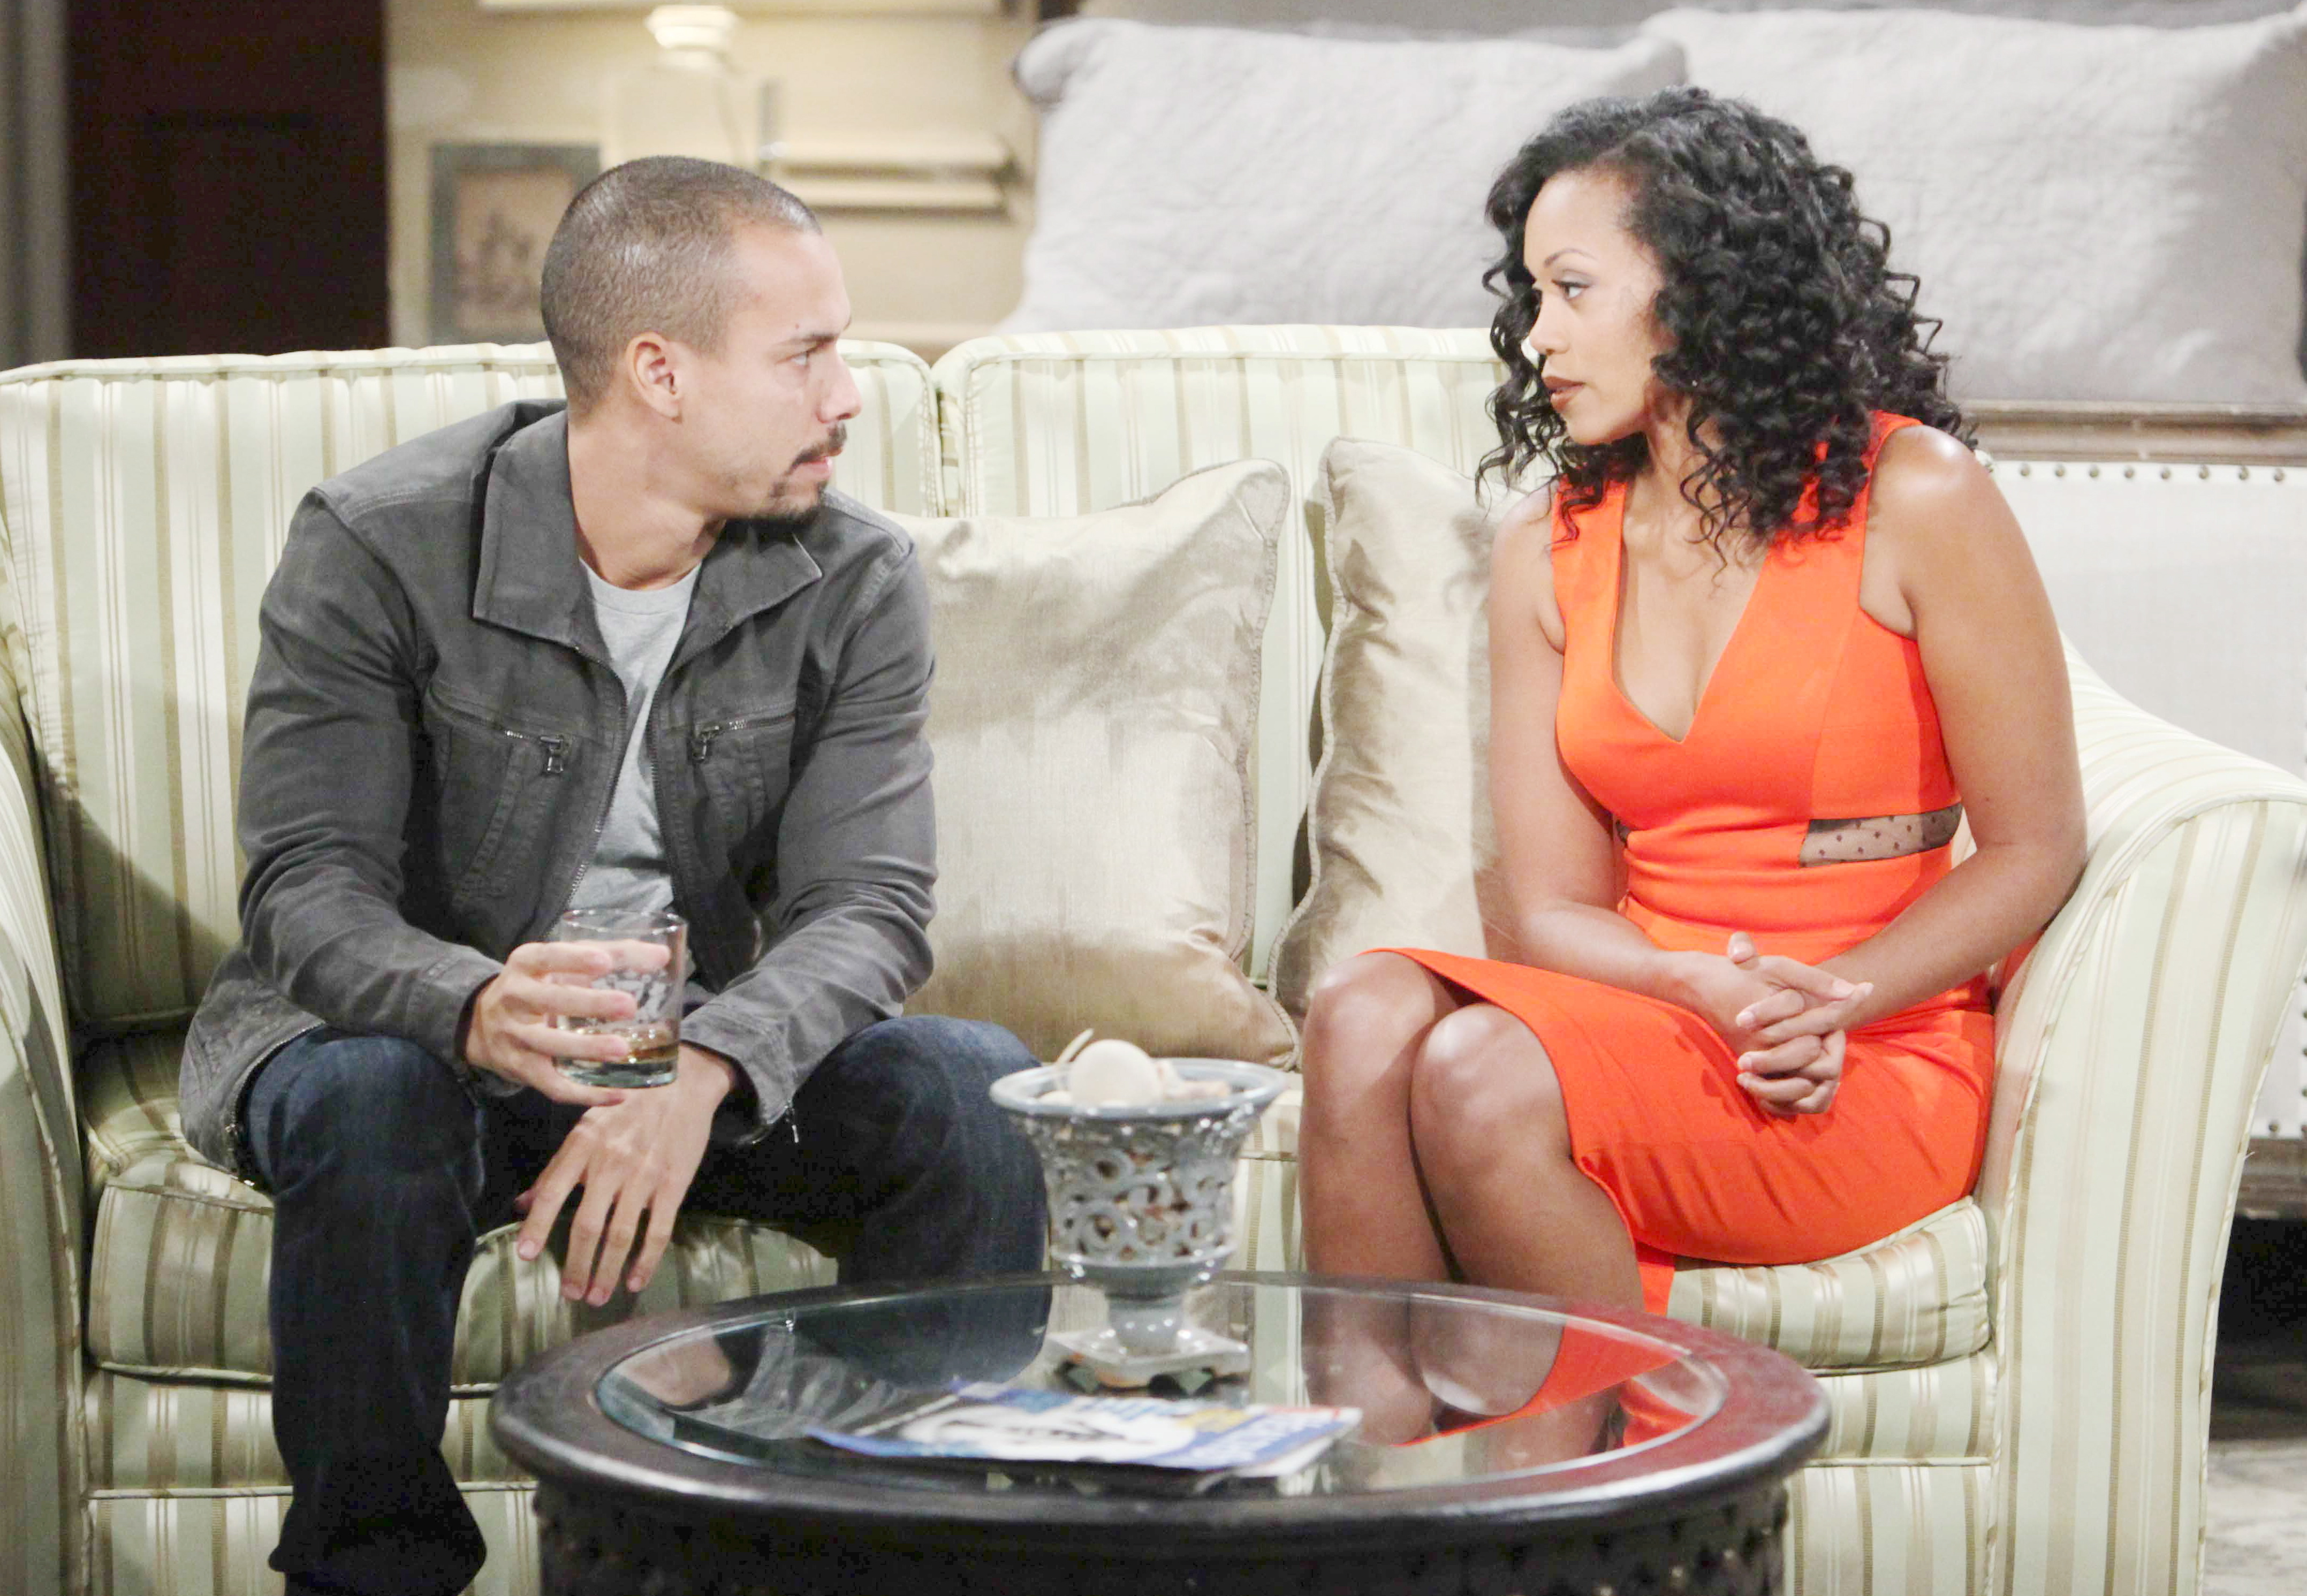 The Young and the Restless Spoiler: Lily smells trouble for Devon